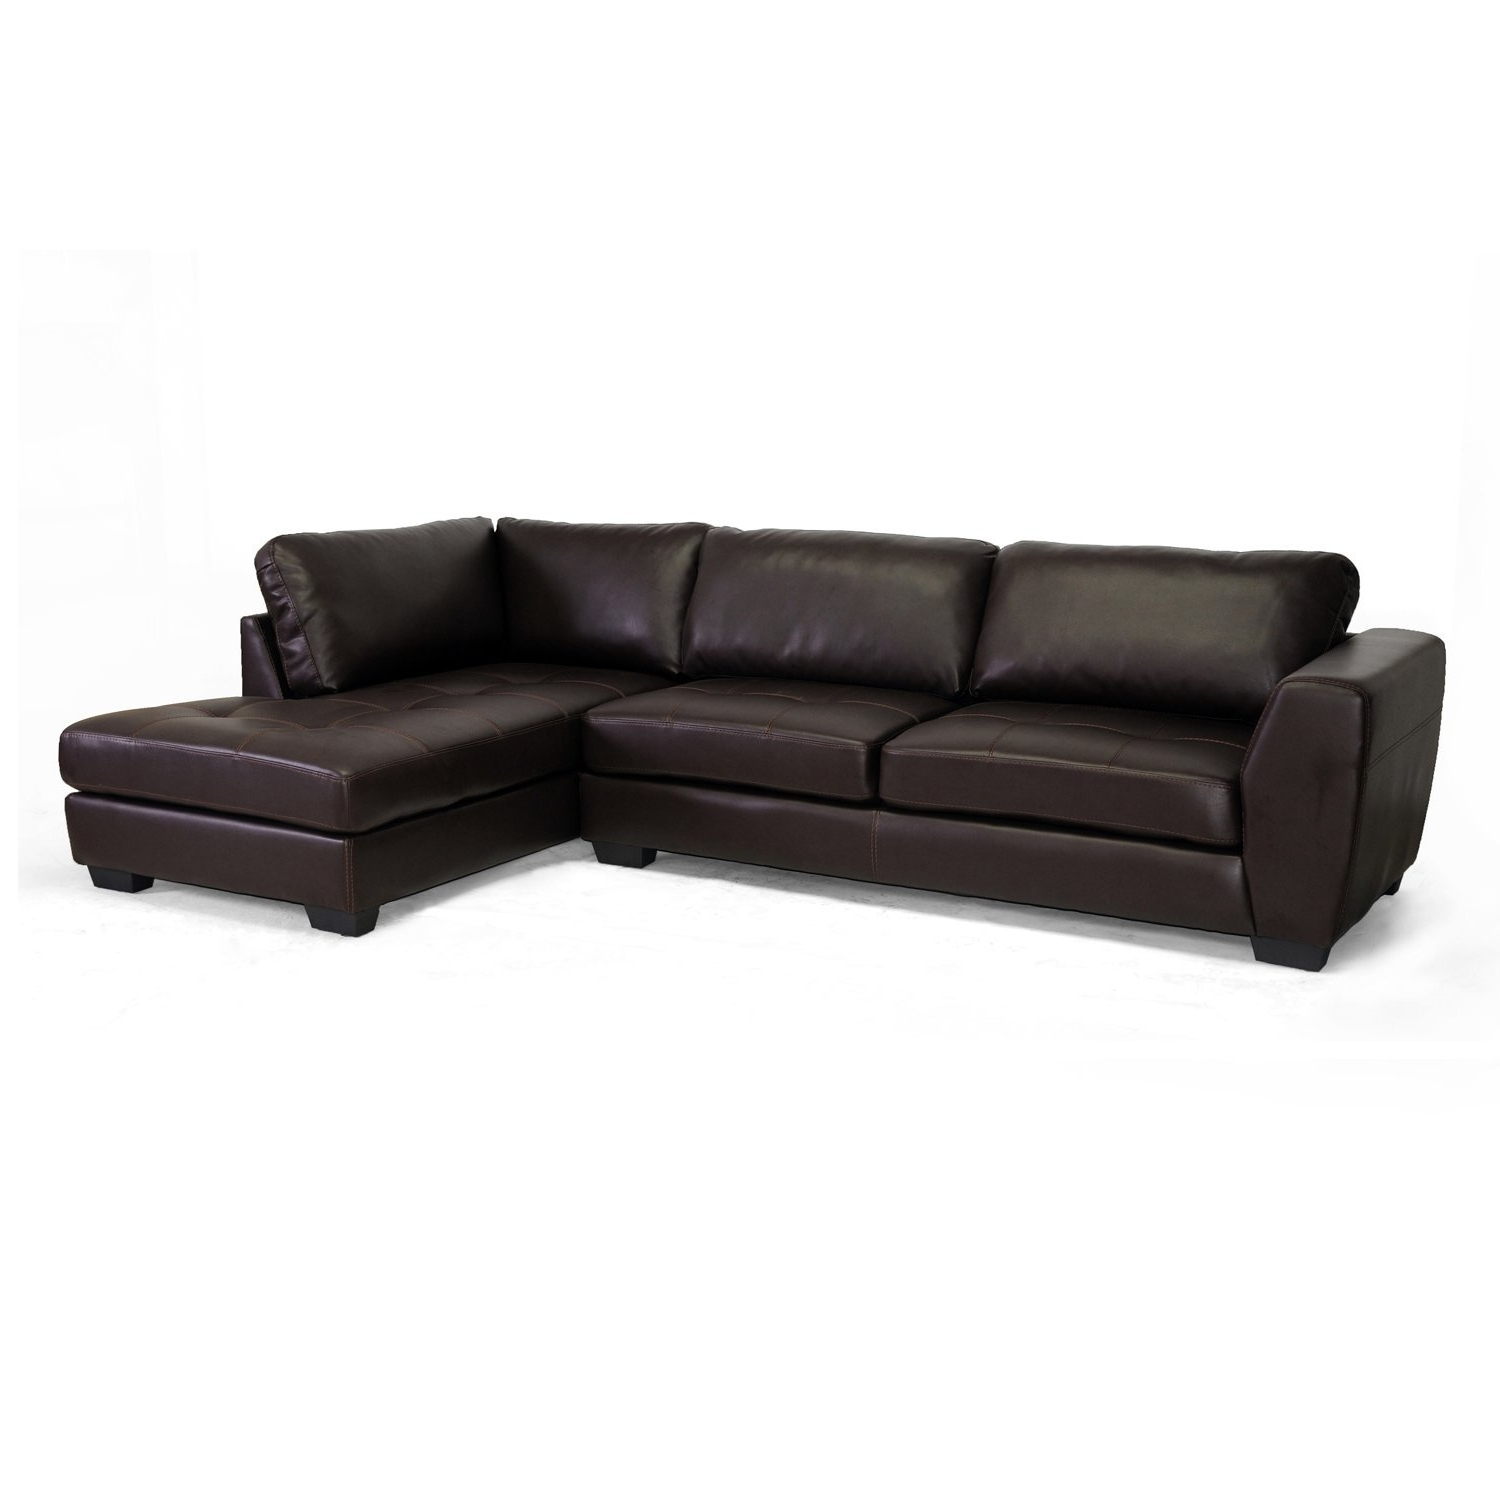 Sectional Sofas With 2 Chaises Throughout Most Popular Amazon: Baxton Studio Orland Bonded Leather Modern Sectional (View 14 of 15)